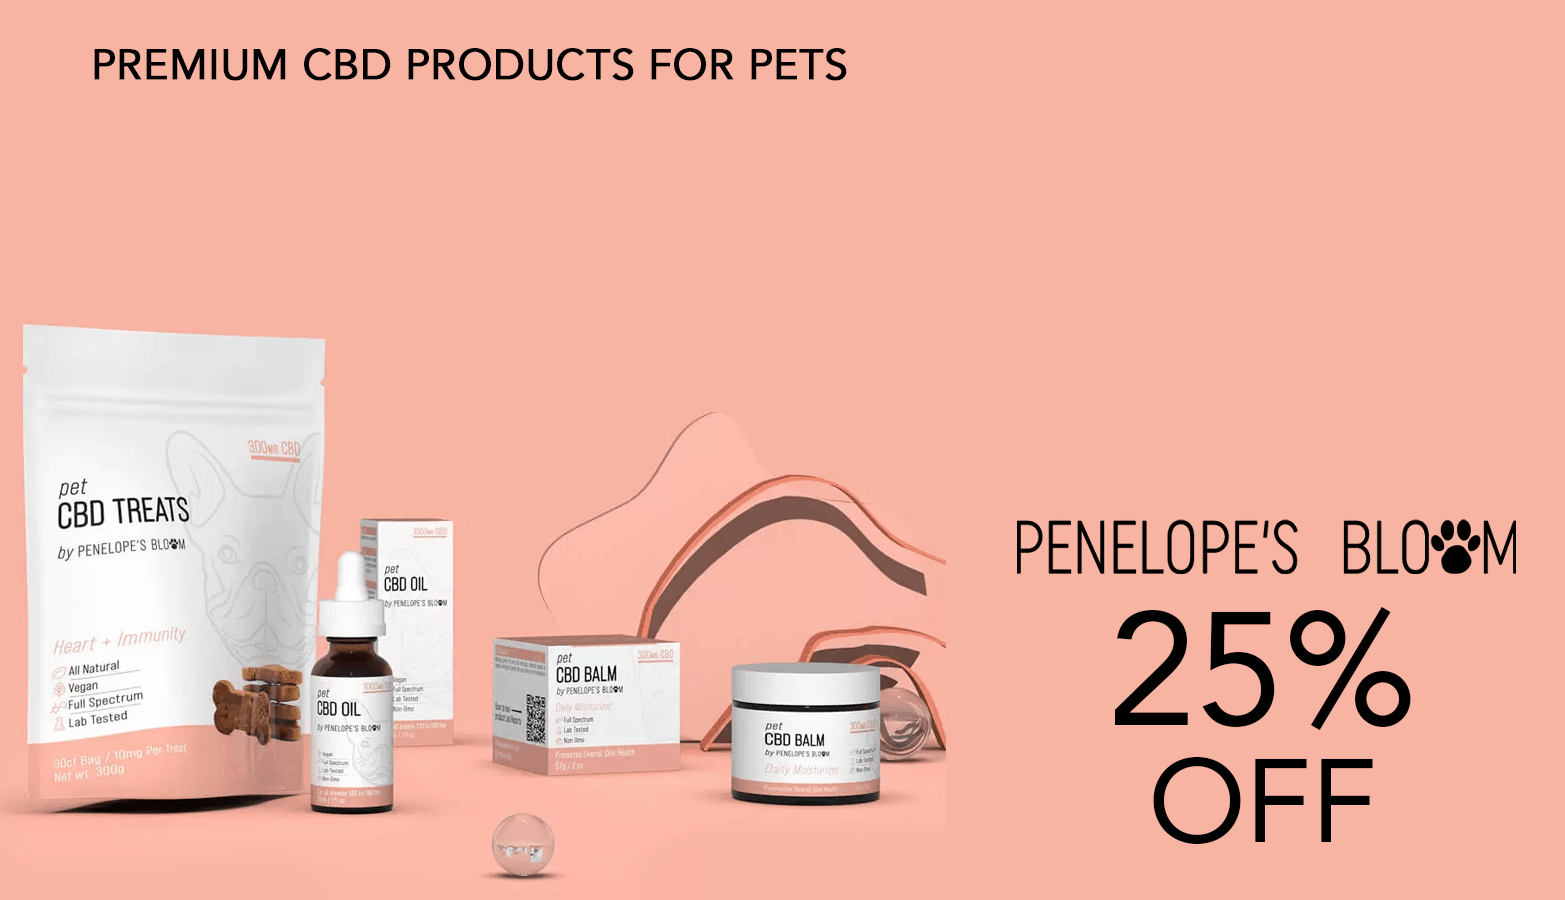 Penelope's Bloom CBD Coupon Code 25 Percent Offer Website